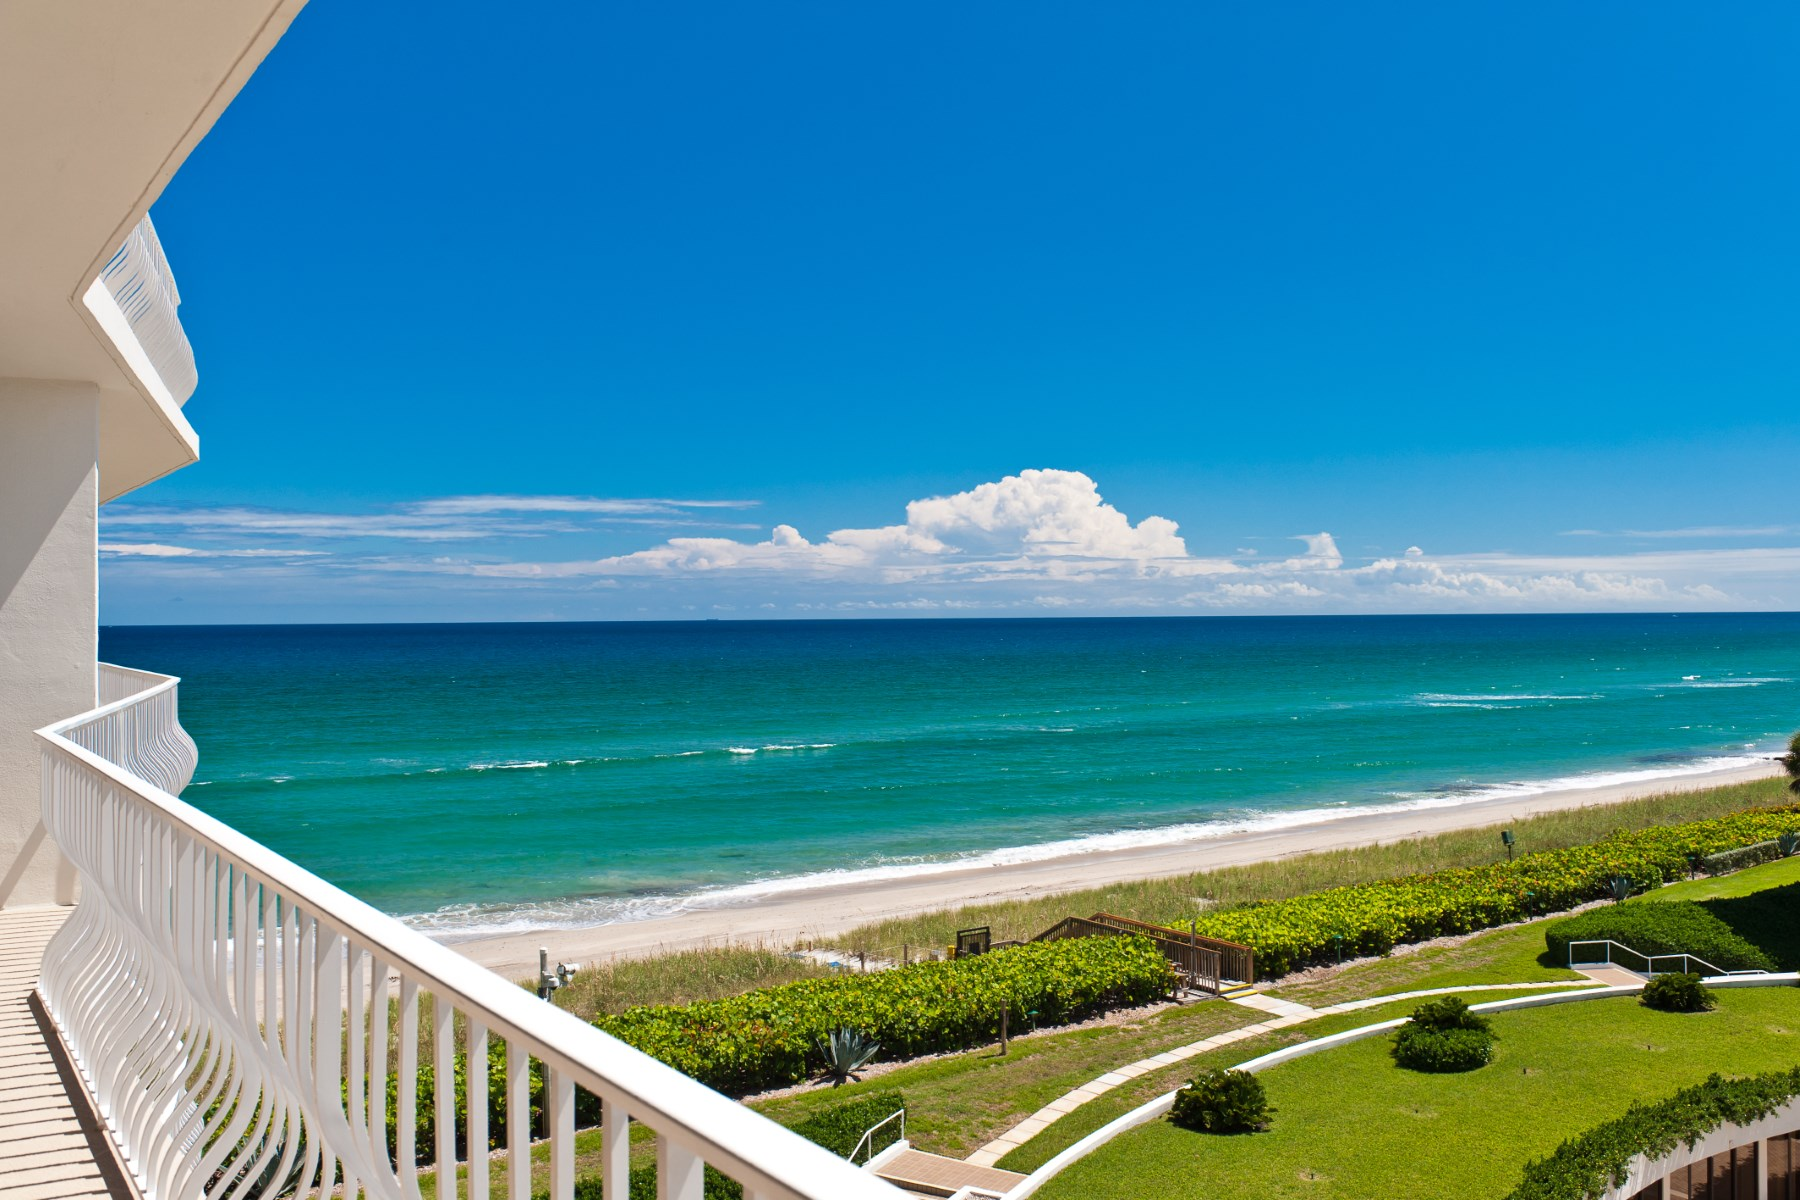 Condomínio para Venda às Breathtaking Views 2000 S Ocean Blvd Apt 408N Palm Beach, Florida, 33480 Estados Unidos